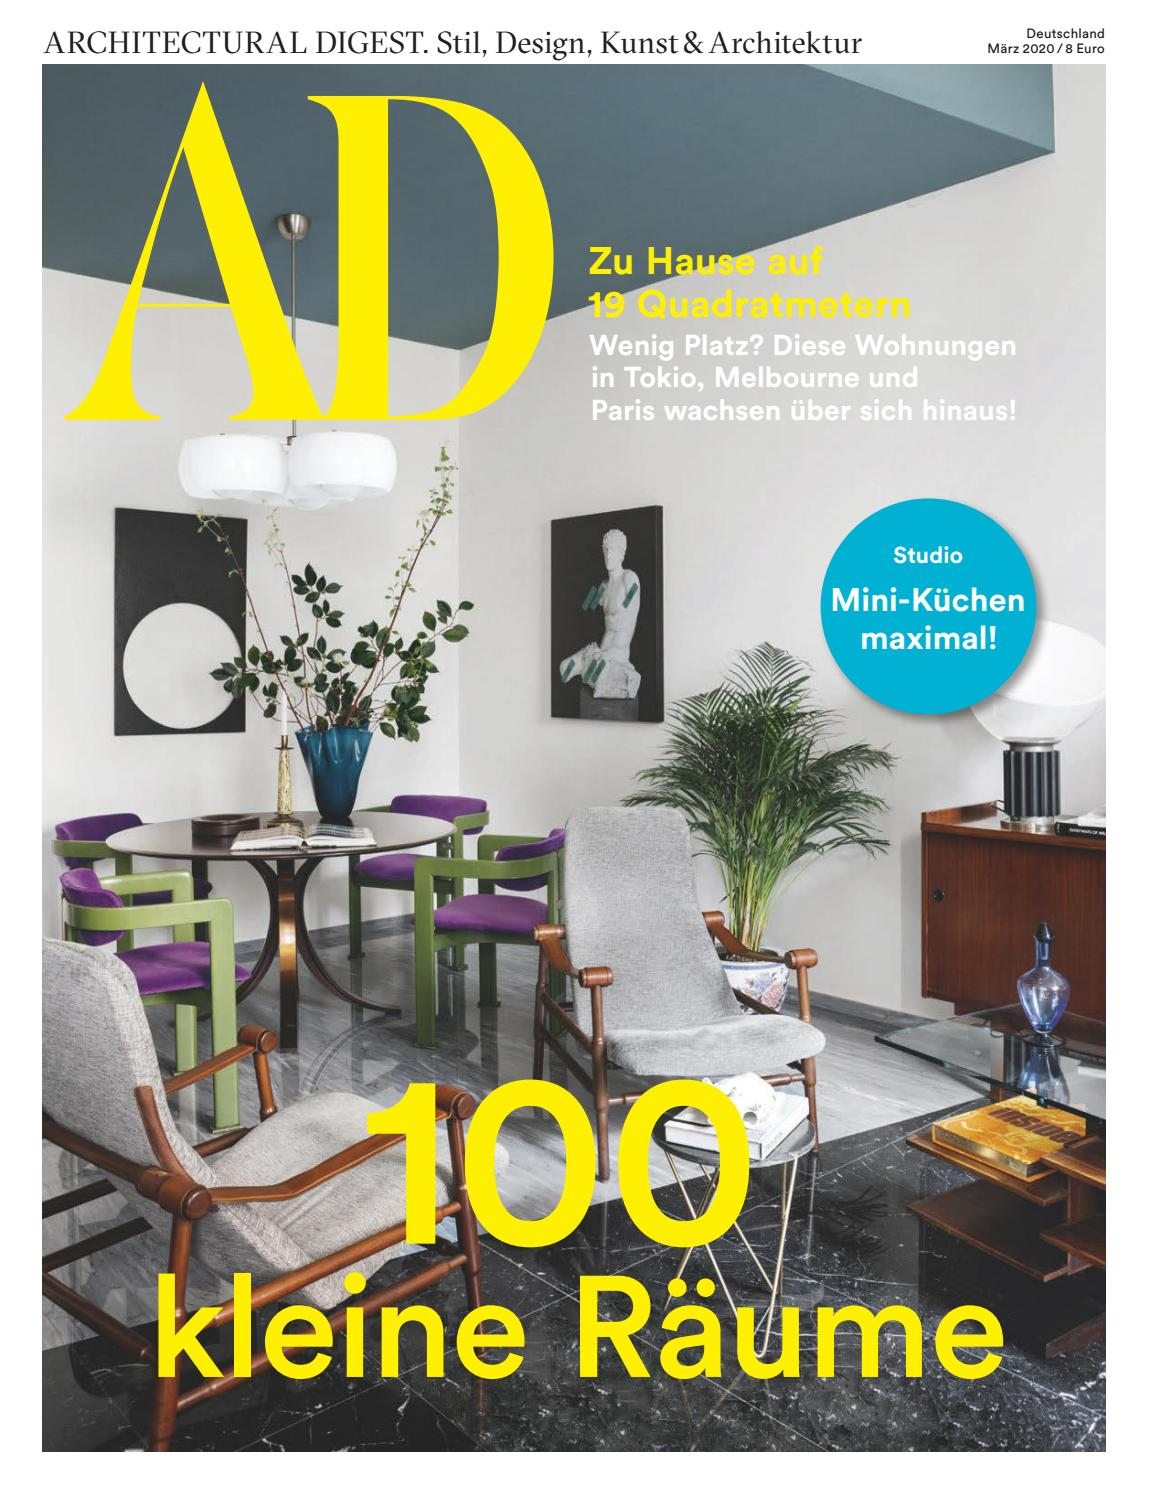 Ad 03 2020 100 Kleine Räume By Ad Architectural Digest Issuu